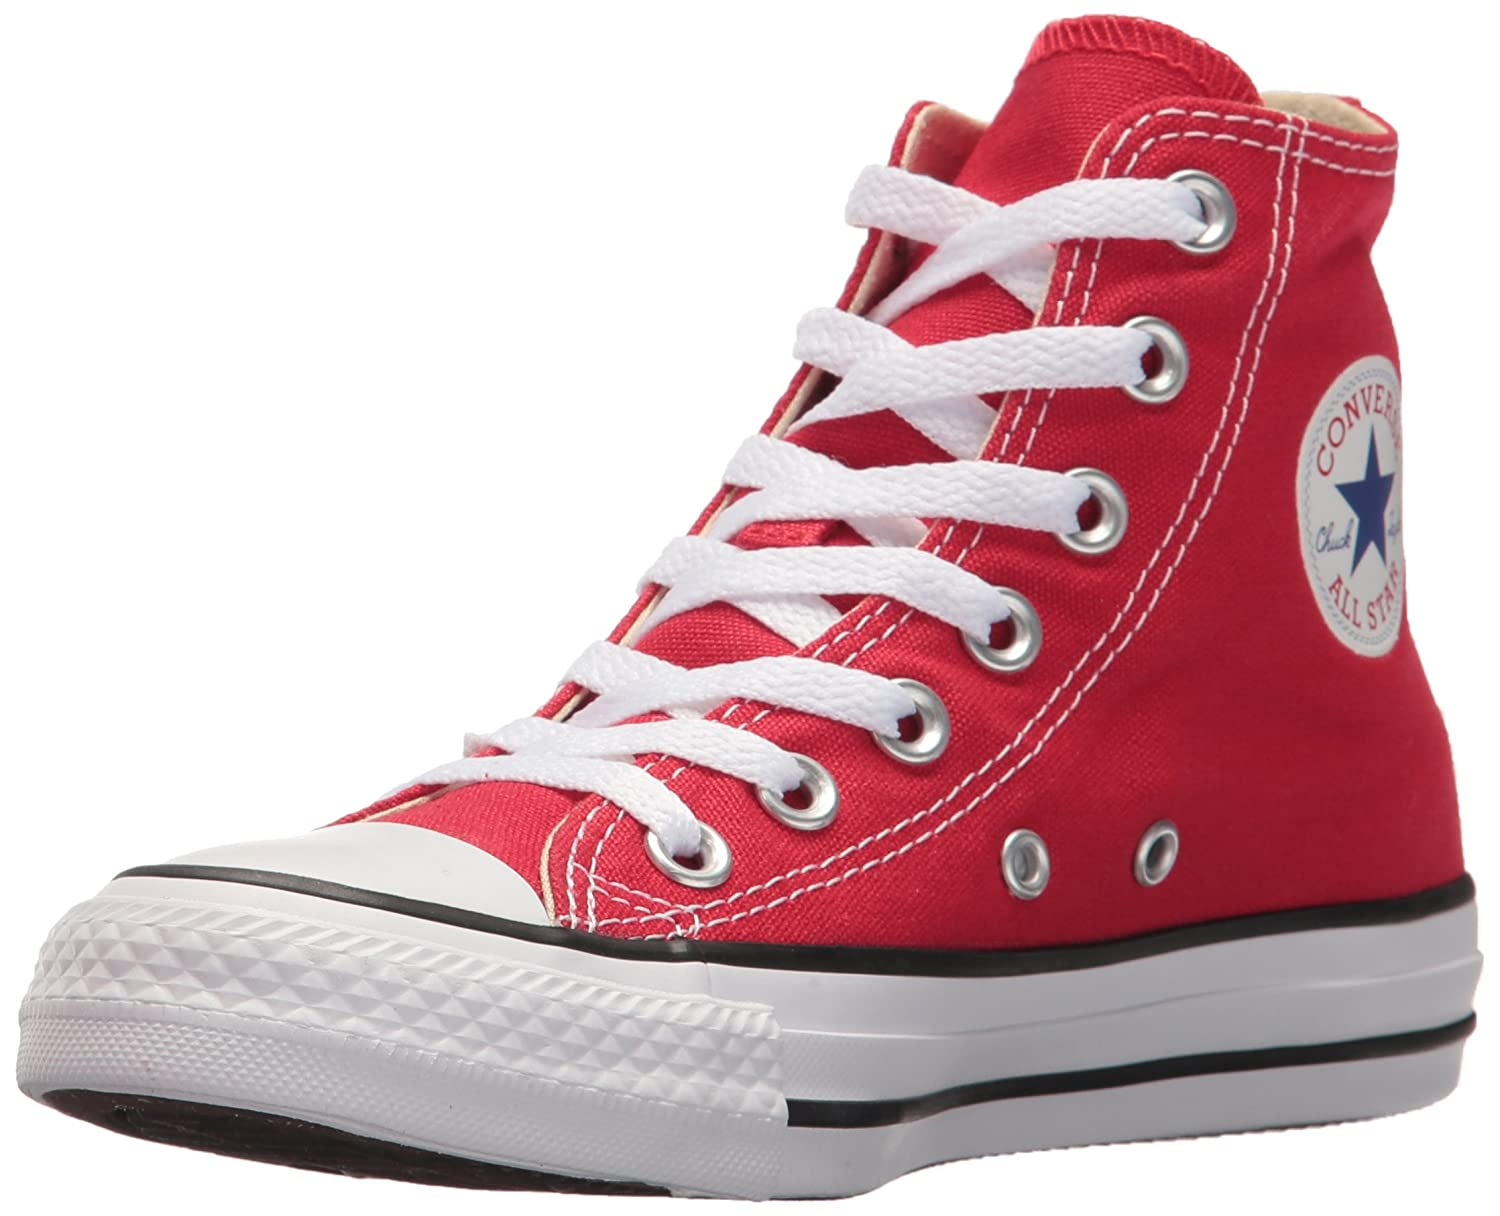 Converse Chuck Taylor All Star High Top B001AET9QG 16 US Men/18 US Women|Red